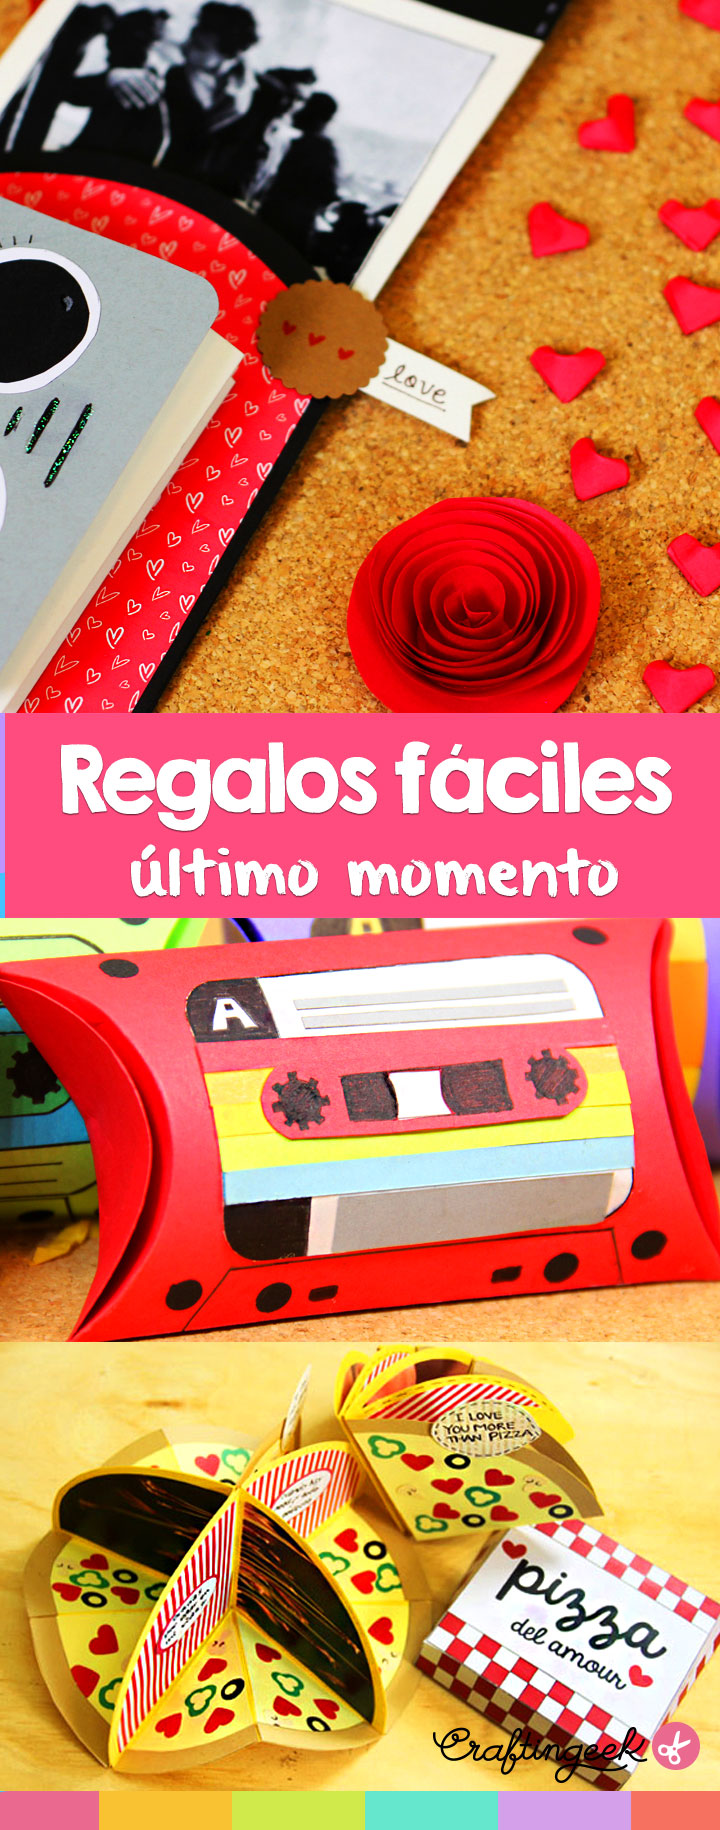 regalos-faciles-craftingeek-para-san-valentin